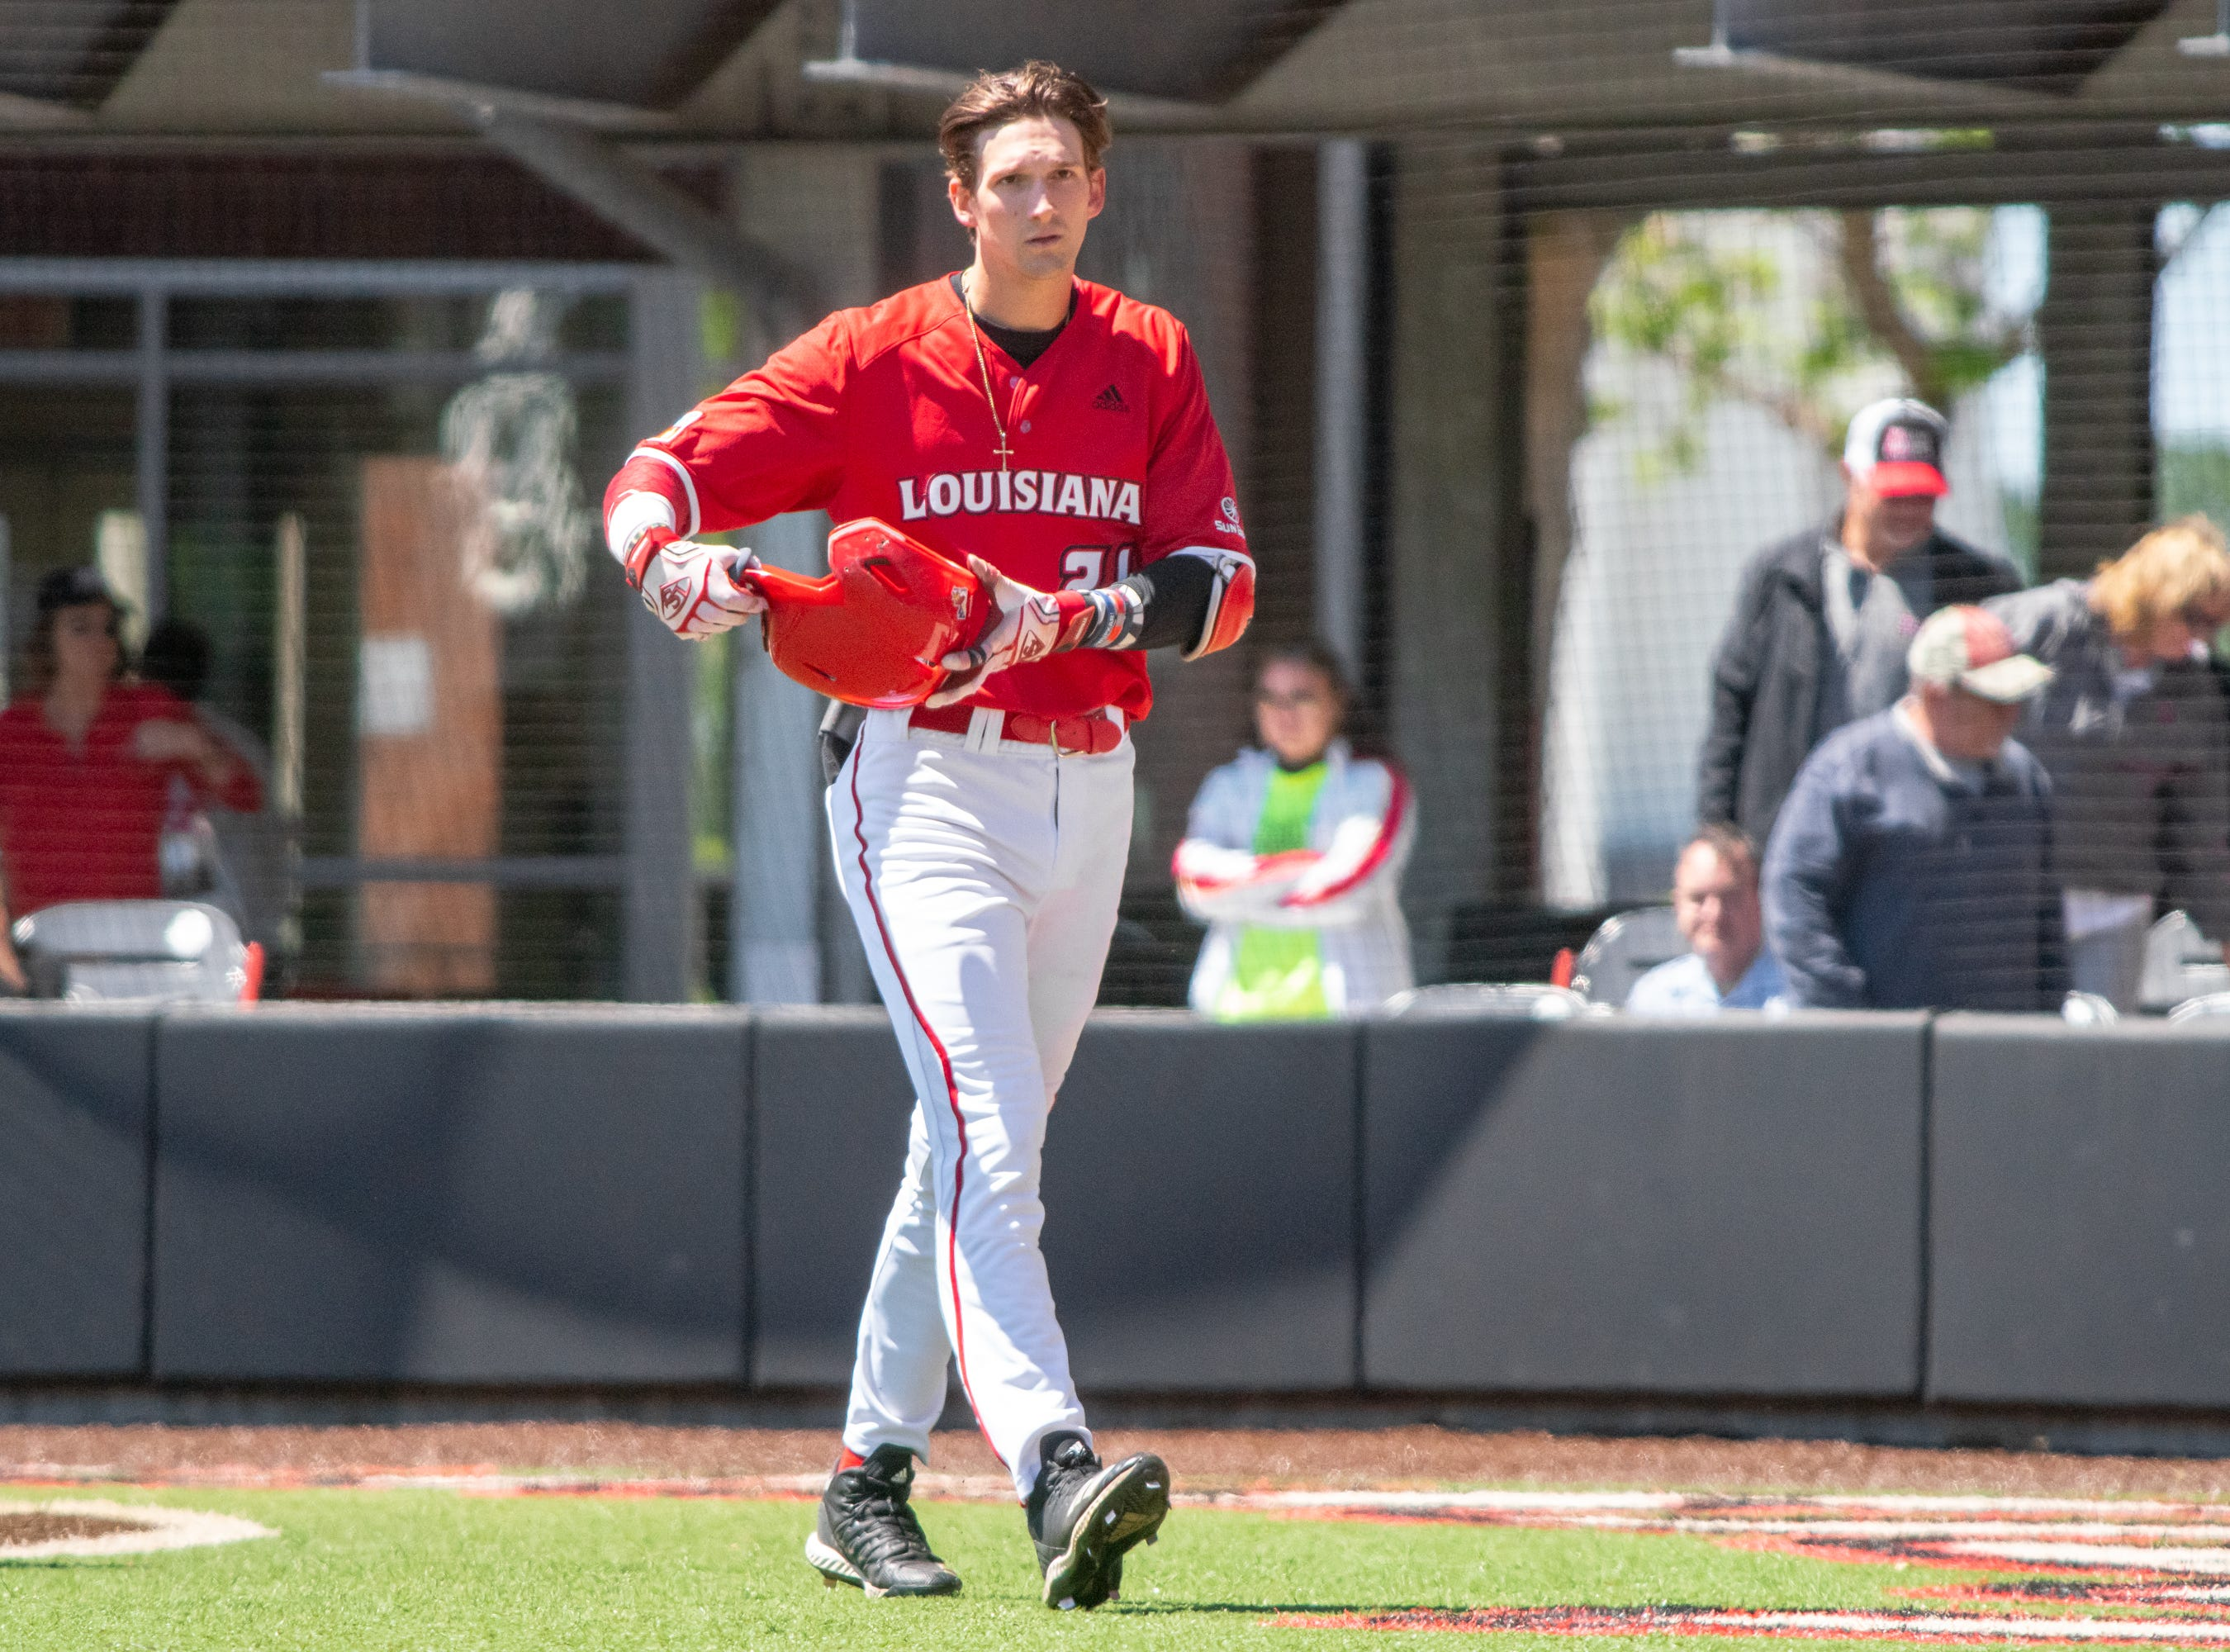 """UL's Orynn Veillon celebrates his score while walking to the dugout as the Ragin' Cajuns take on the South Alabama Jaguars at M.L. """"Tigue"""" Moore Field on Sunday, April 14, 2019."""